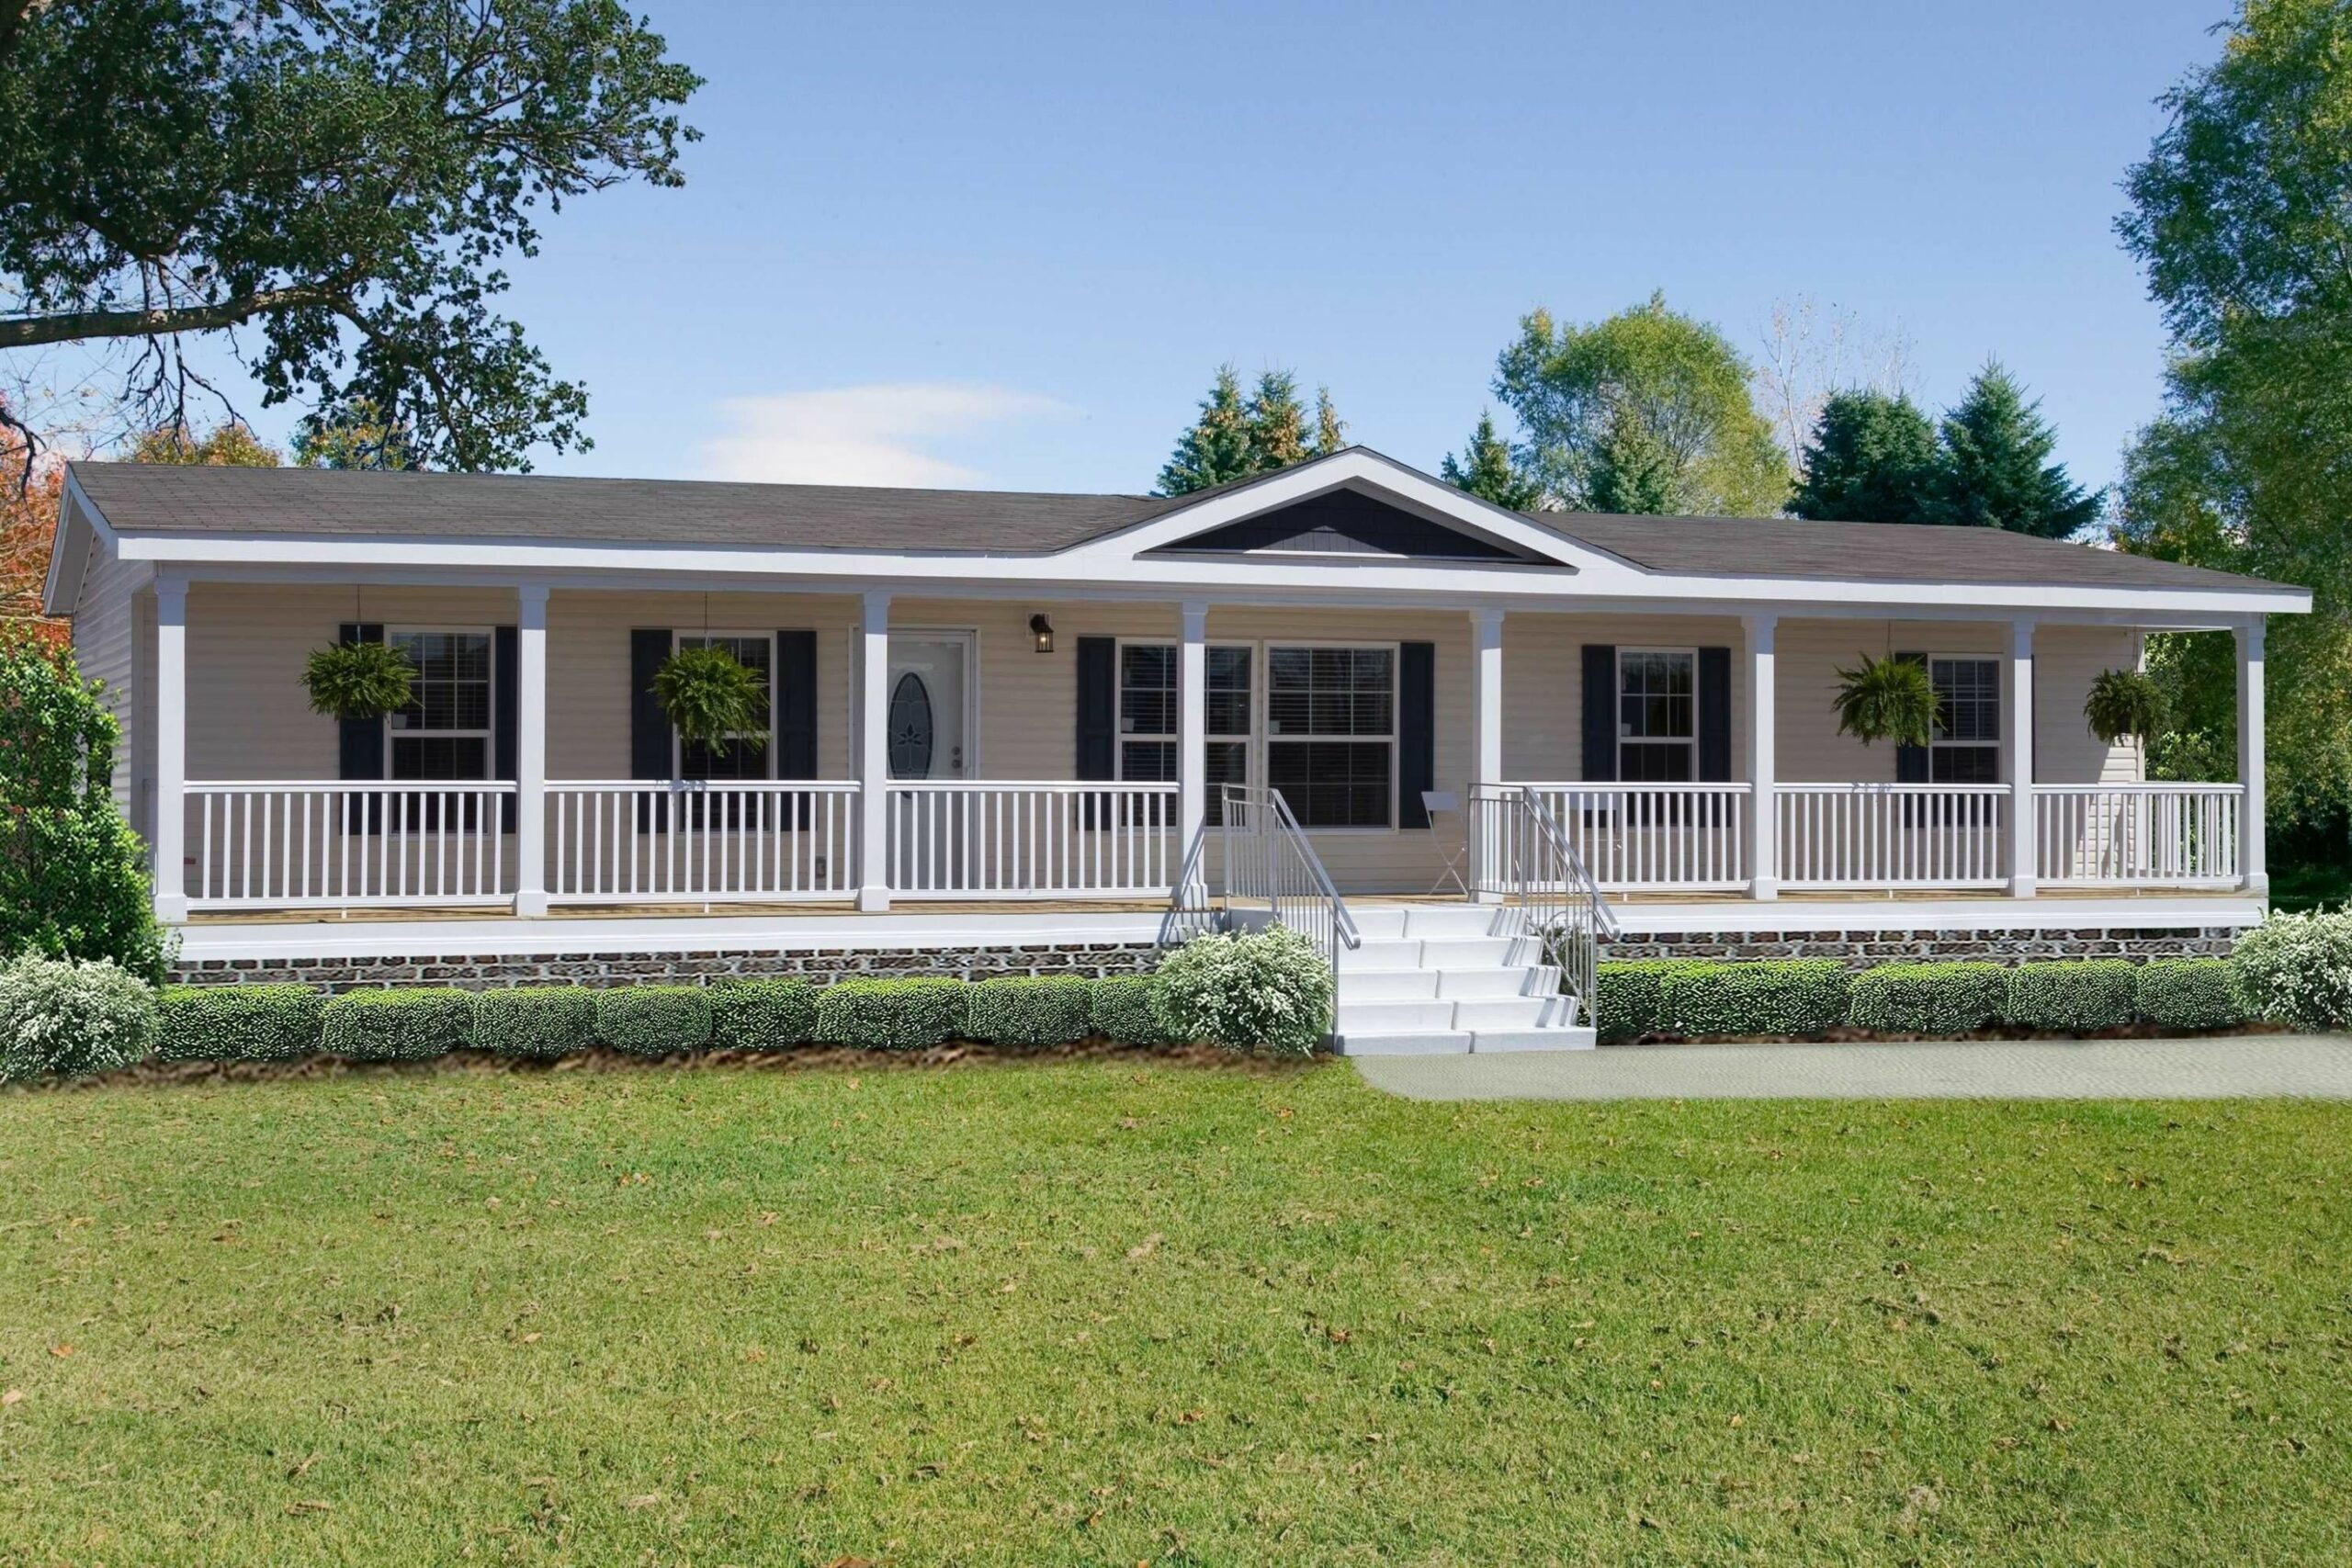 Best of Front Porch Designs For Double Wide Mobile Homes BW8i8 ..